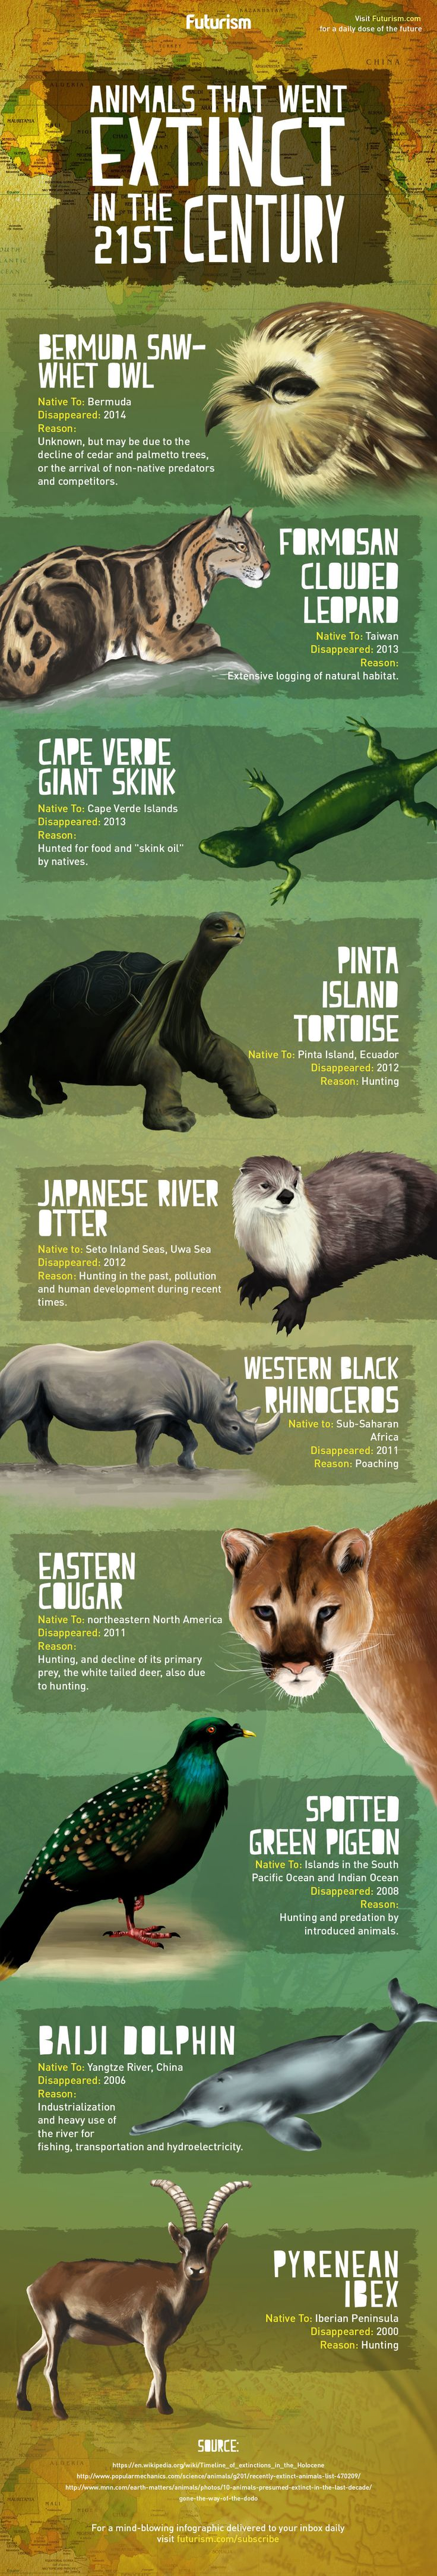 According to new research, biodiversity across much of Earth has dropped below safe levels. Here are some of the species we've lost this century. http://futurism.com/images/animals-that-went-extinct-in-the-21st-century-infographic/?utm_campaign=coschedule&utm_source=pinterest&utm_medium=Futurism&utm_content=Animals%20That%20Went%20Extinct%20In%20The%2021st%20Century%20%5BInfographic%5D